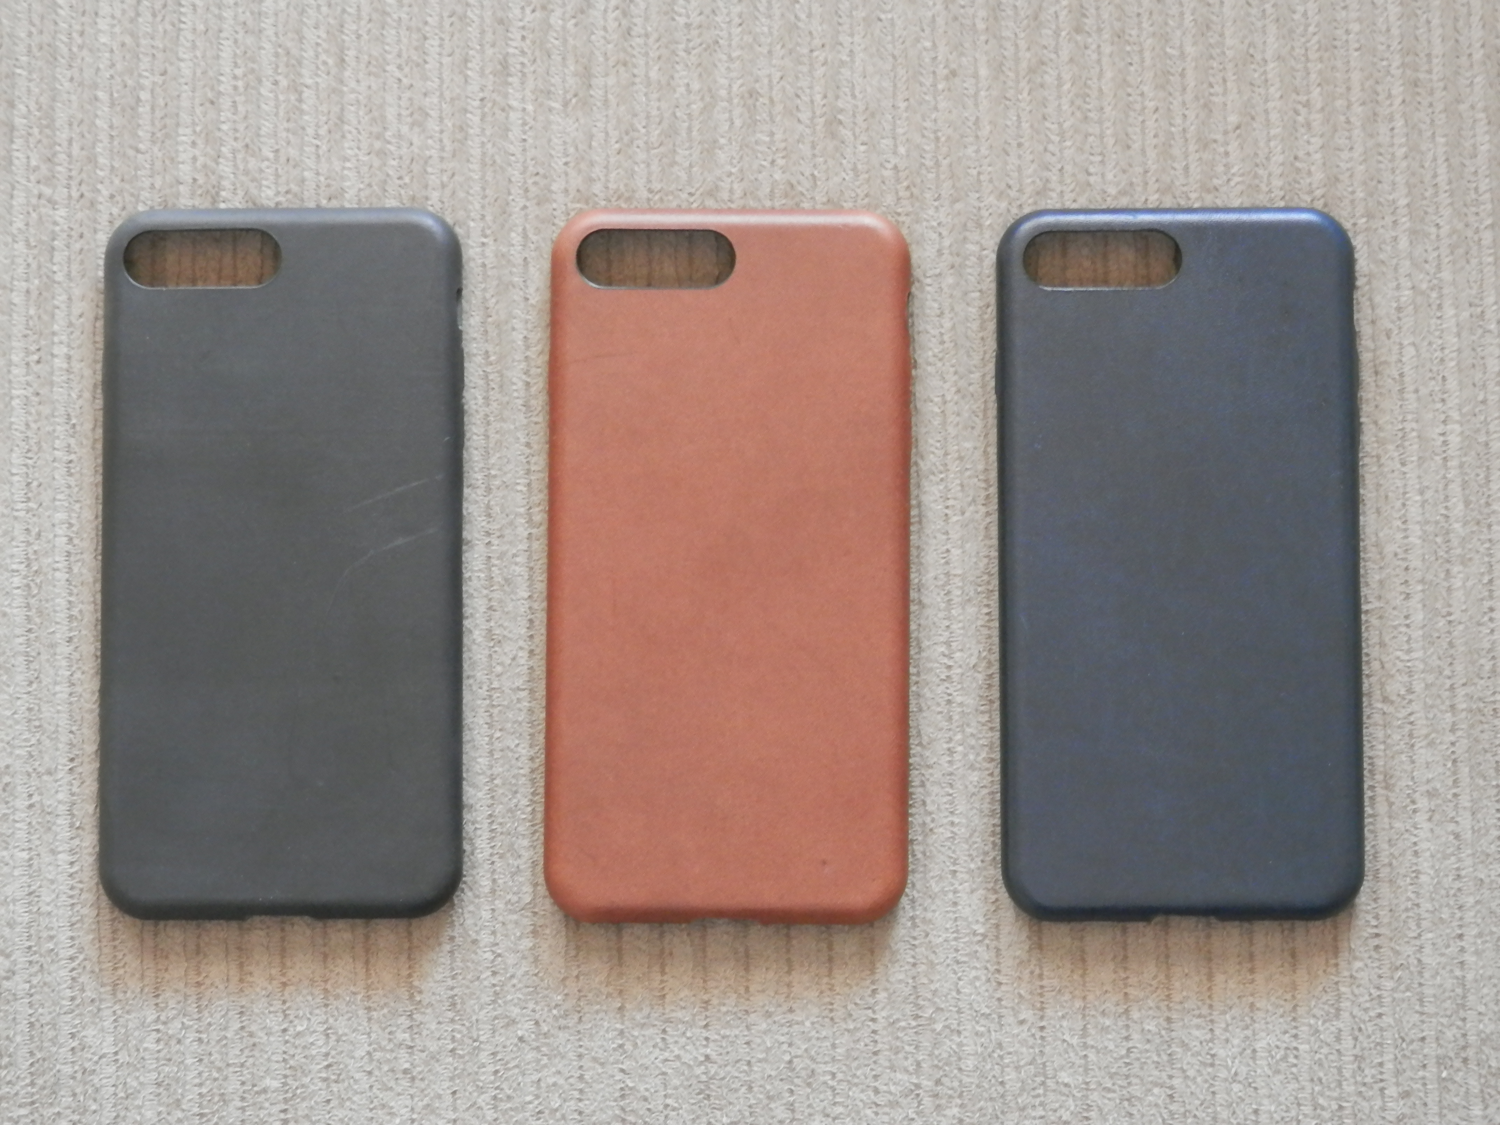 official photos 4fec7 50ac2 Nomad's Horween leather case for iPhone crosses luxury with protection